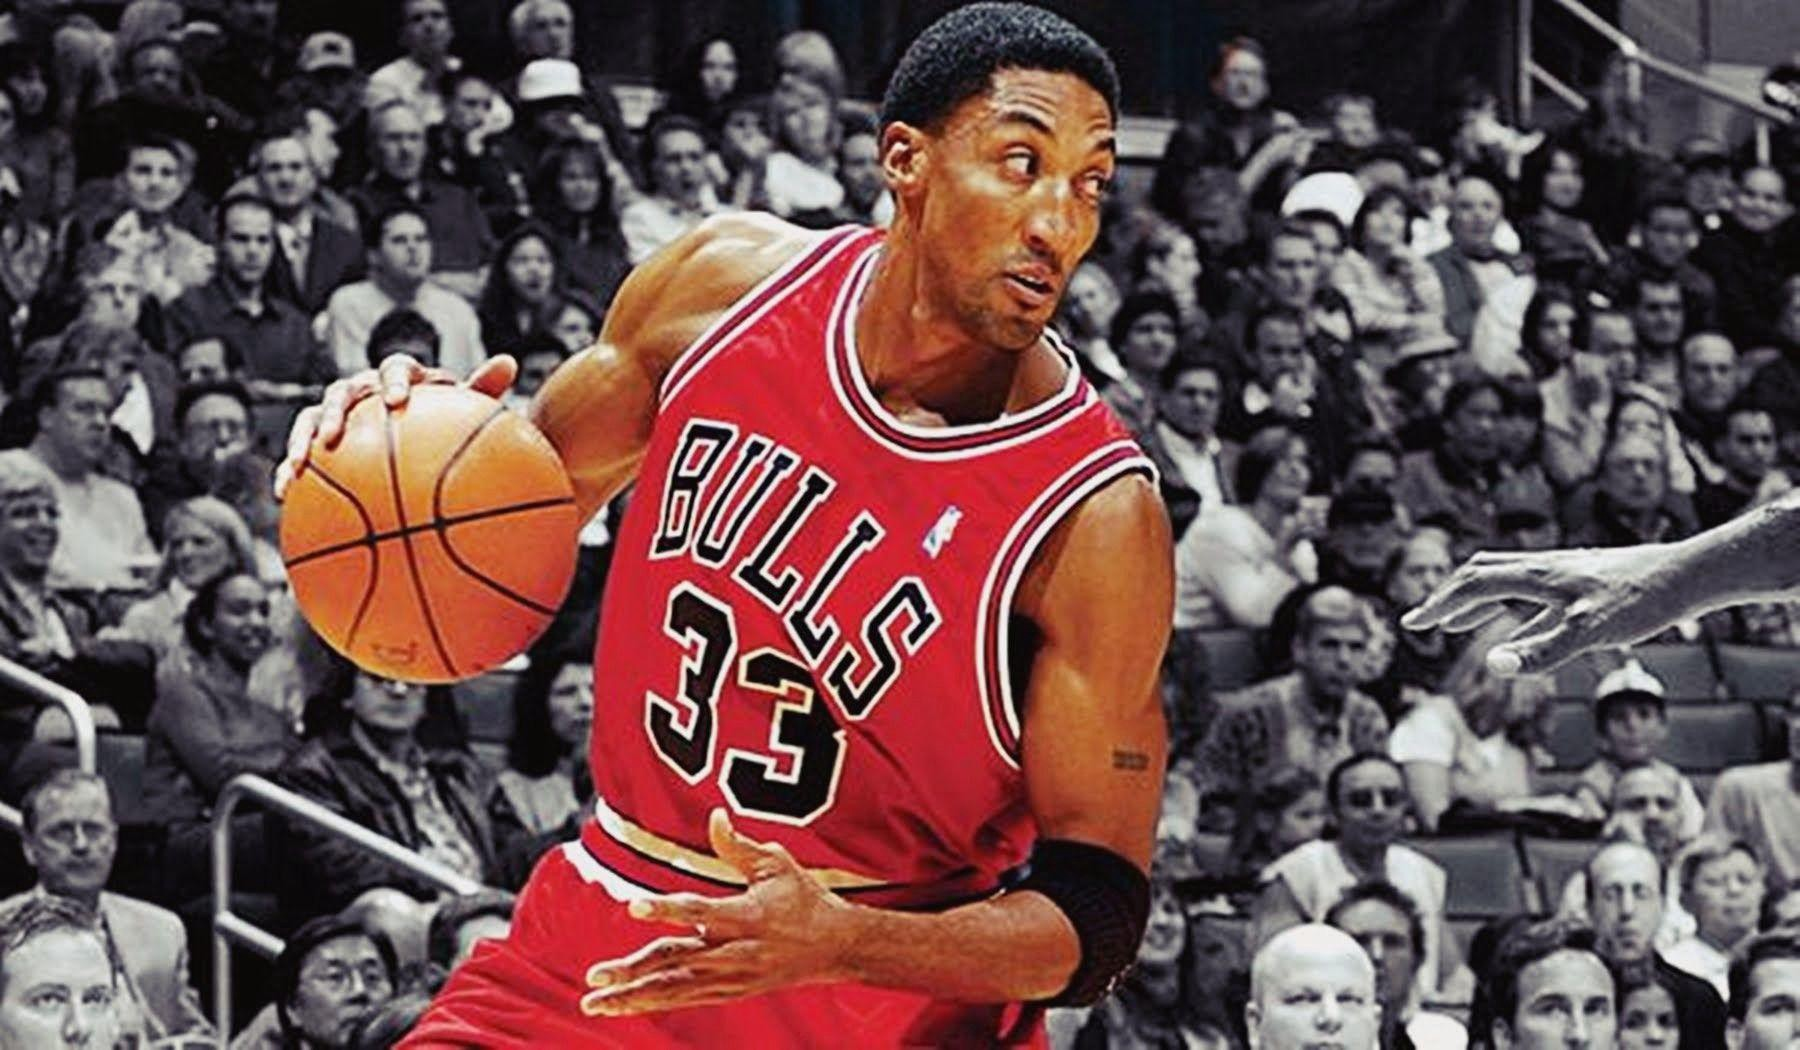 247613c8771b Let s just say it  Scottie Pippen was fucking great. Not good. Not really  good. Not very good. Great. Great great.